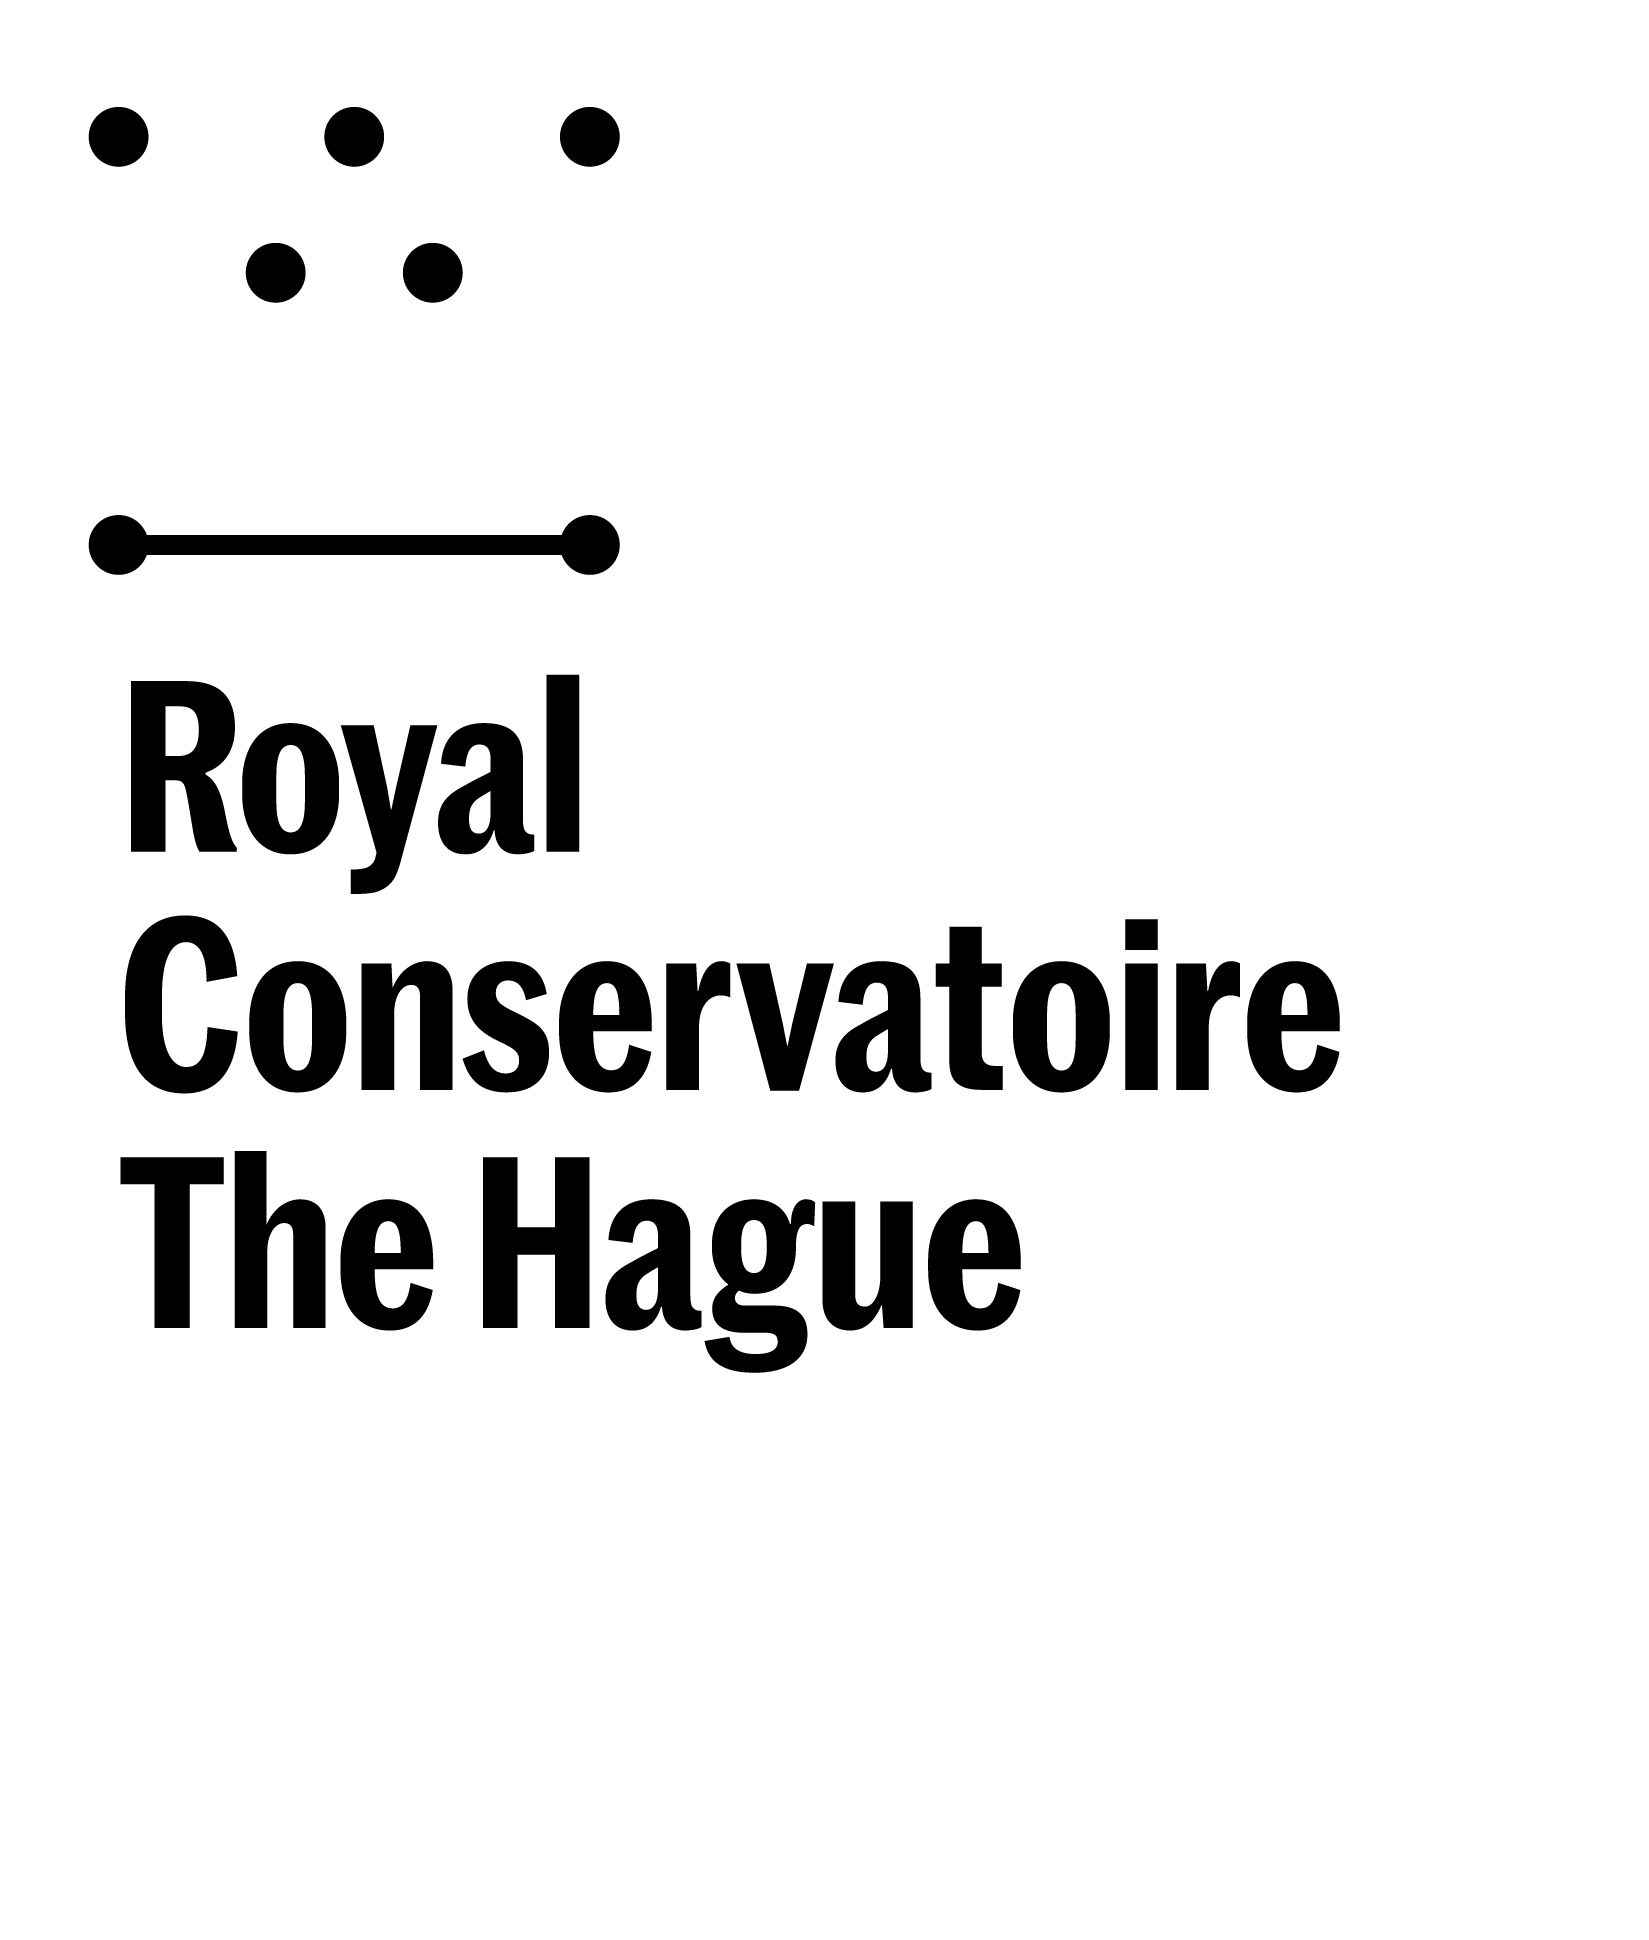 News | Royal Conservatoire The Hague